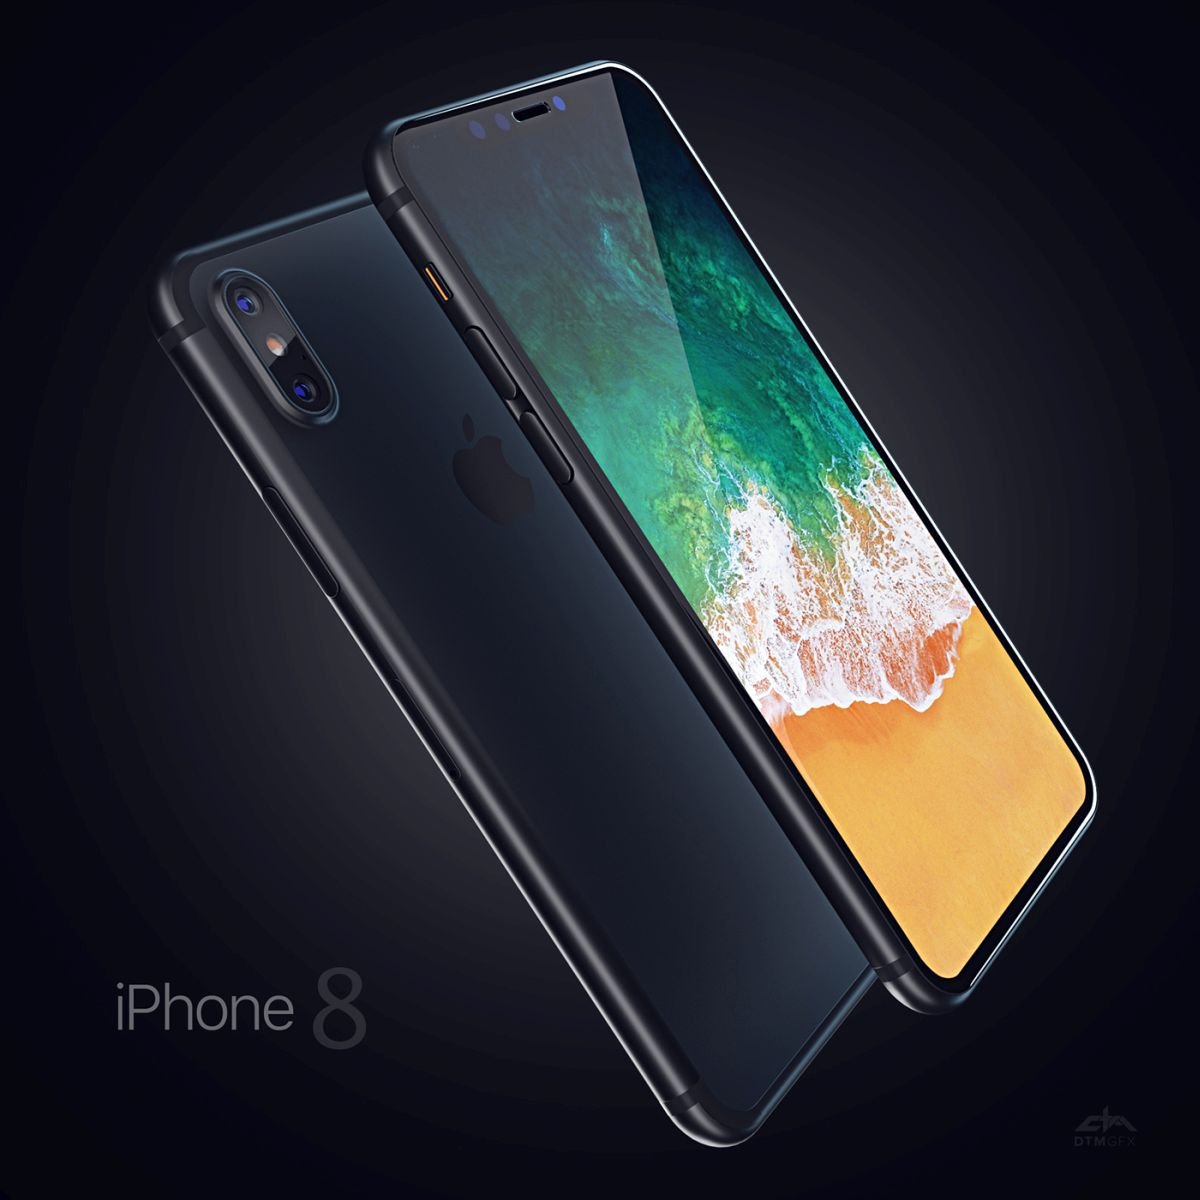 pics of iphone 7 iphone 8 version 3286 dante metaphor render concept phones 3286